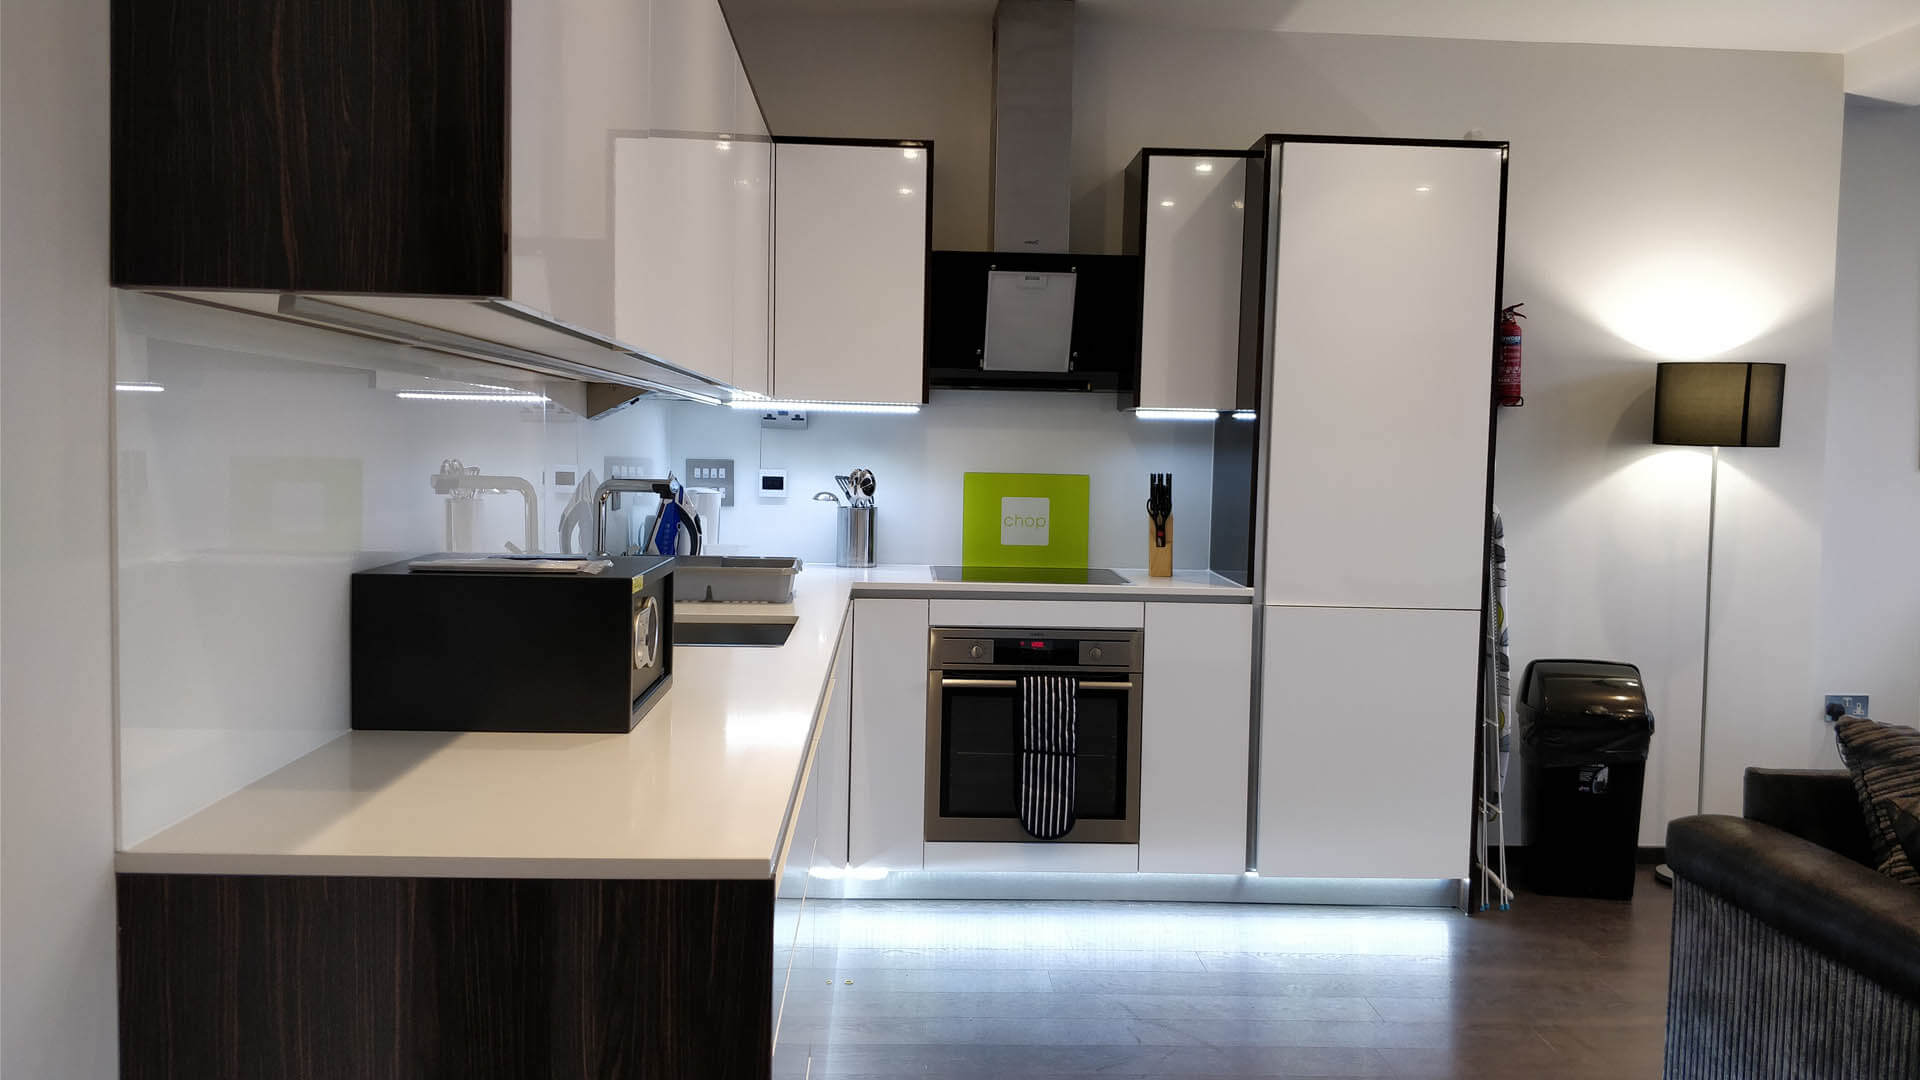 Book-Tower-Hill-Luxury-Apartments-located-in-Aldgate.Close-to-East-End's-Shoreditch-and-Bricklane!-Free-Wfii,-spacious-living-area-&-Weekly-housekeeping!